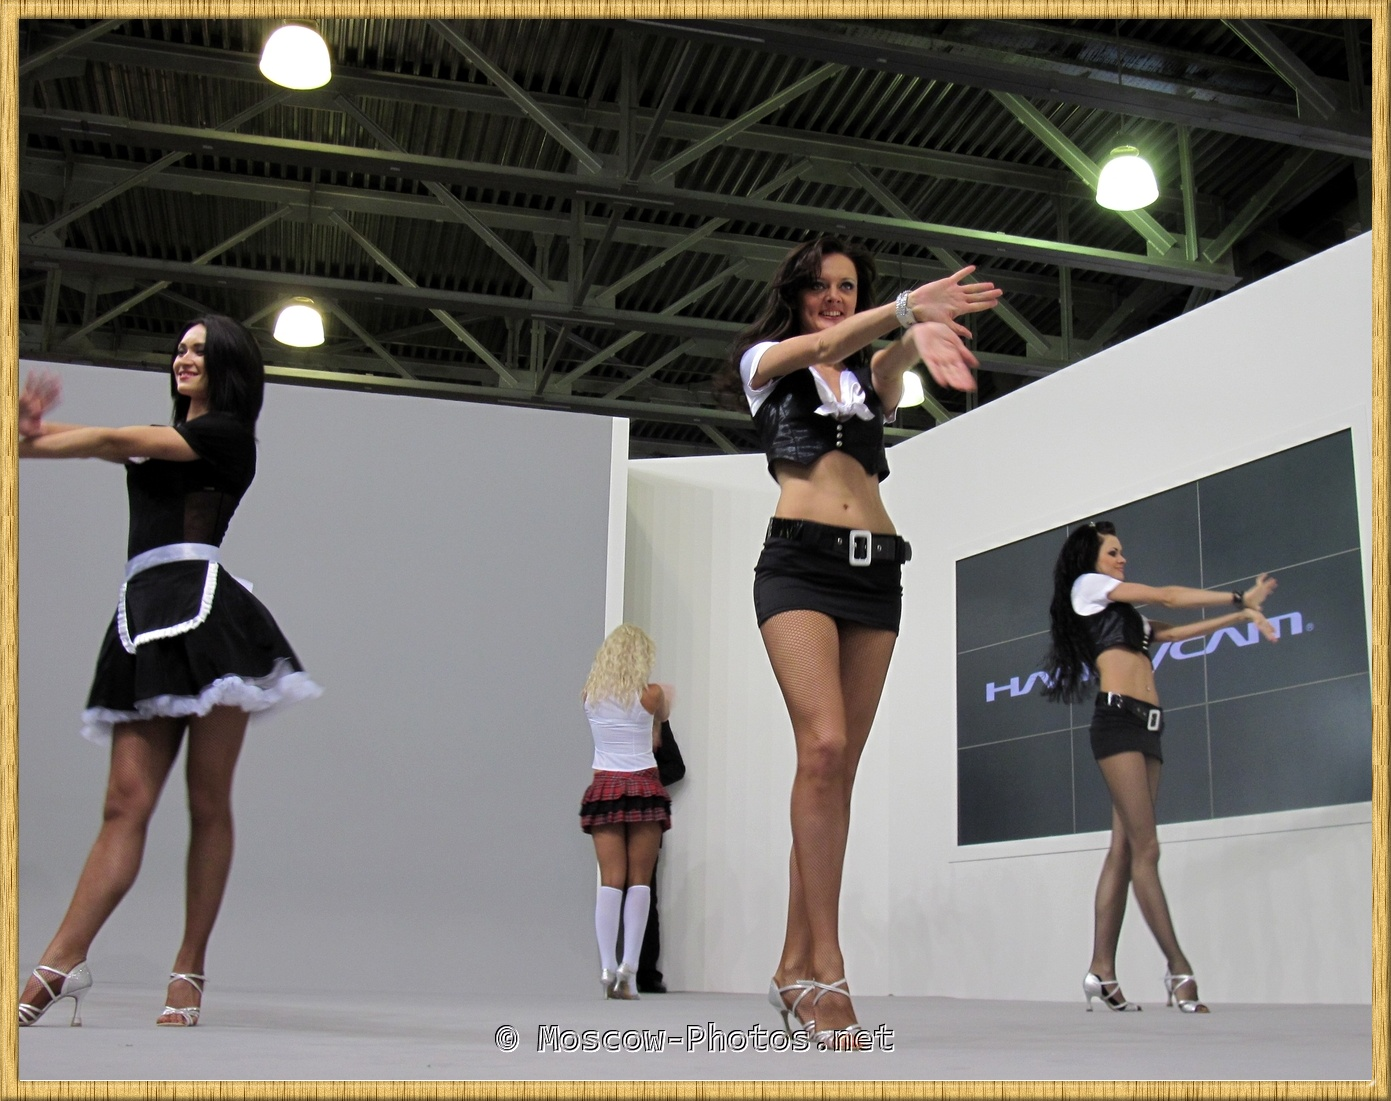 High Heels Girls Dancing.  Moscow Photoforum.